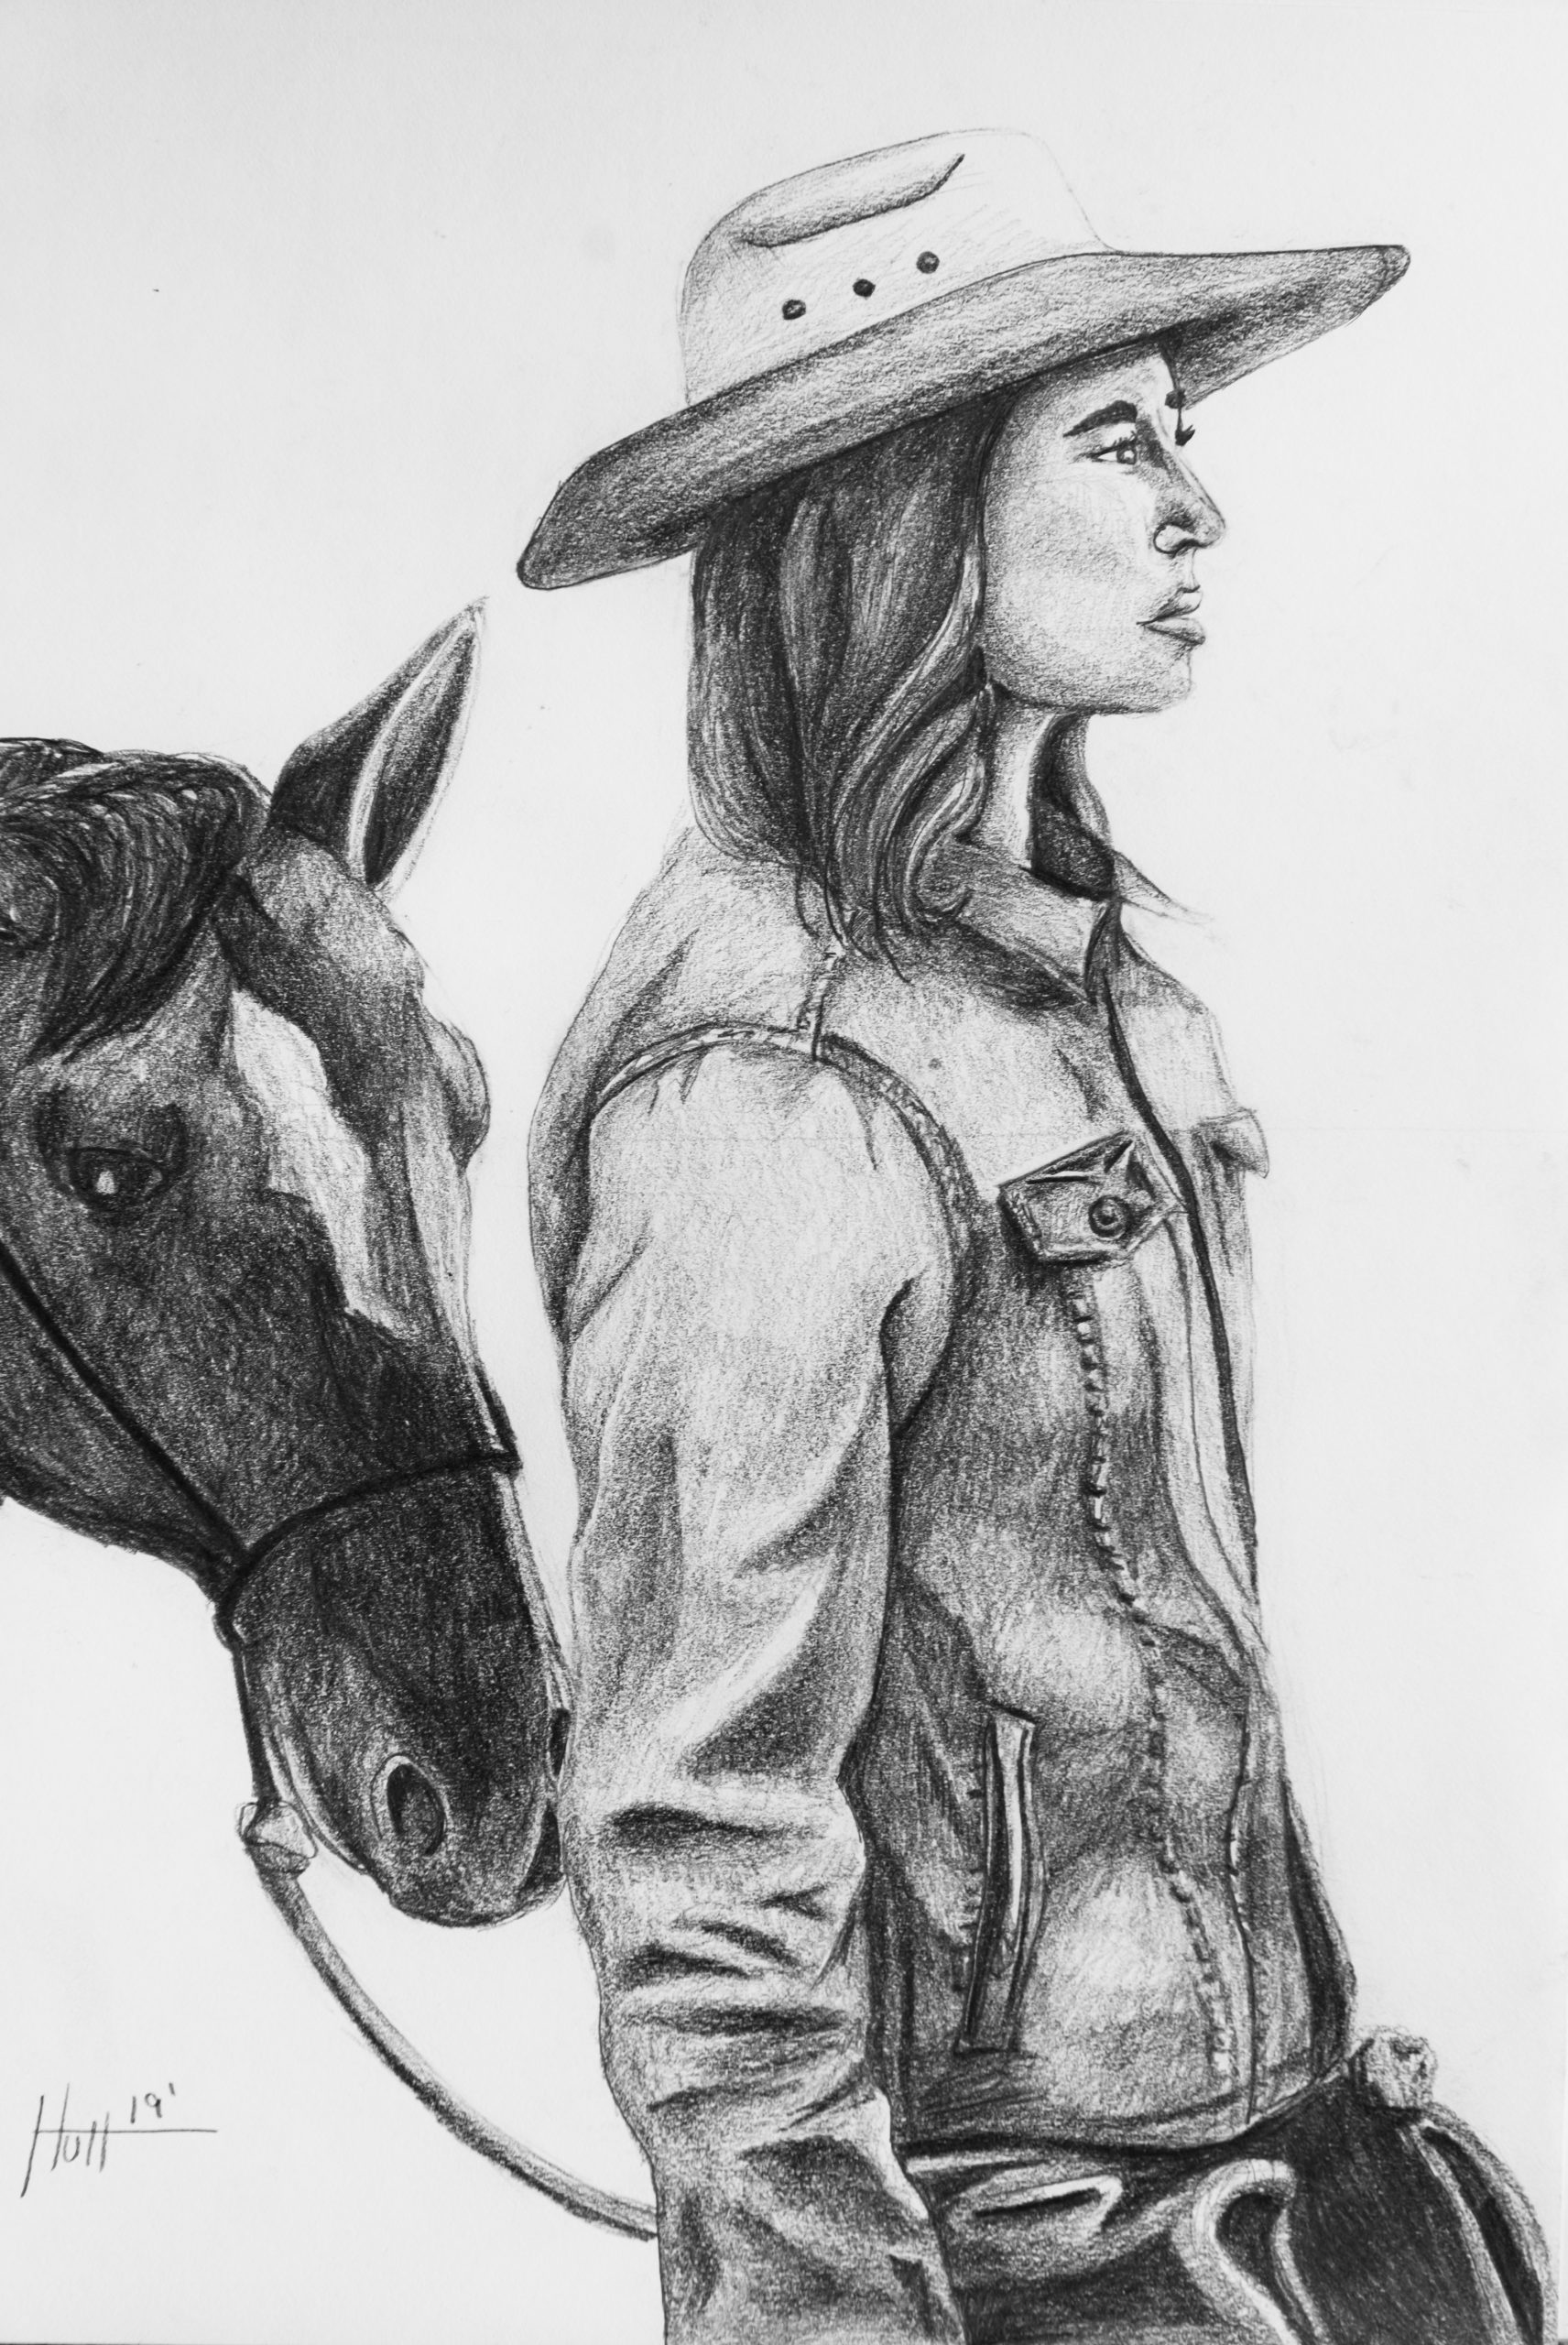 Female figure drawing of a cowgirl and horse